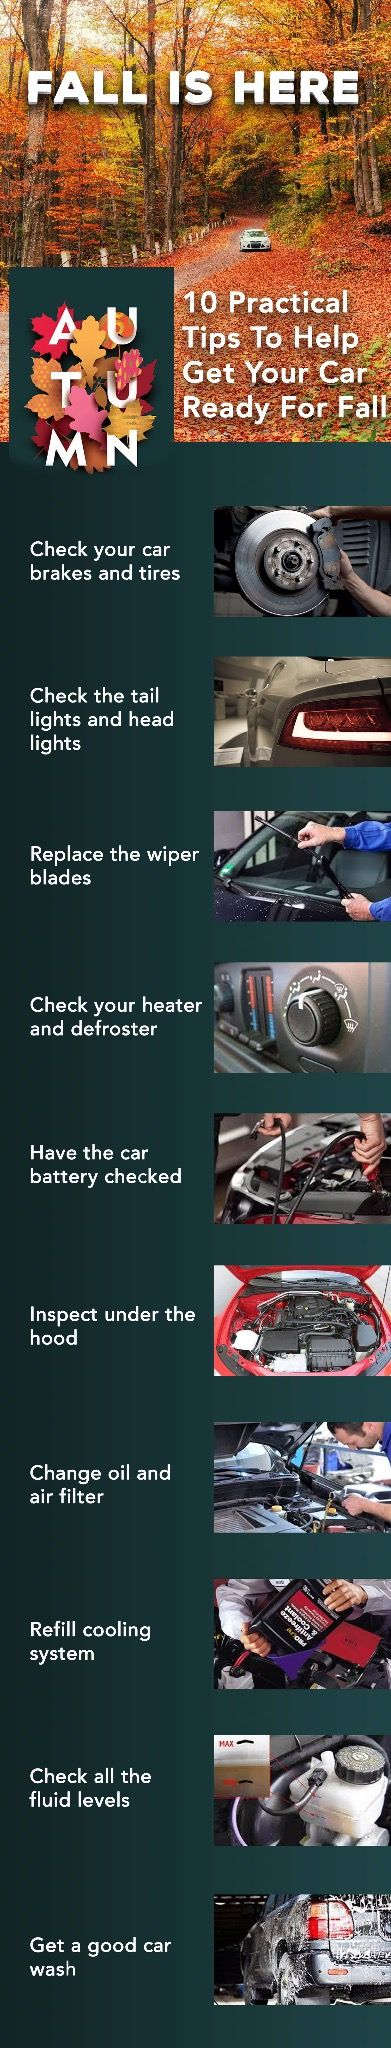 10 practical tips to help get your car ready for fall infographic carhelp